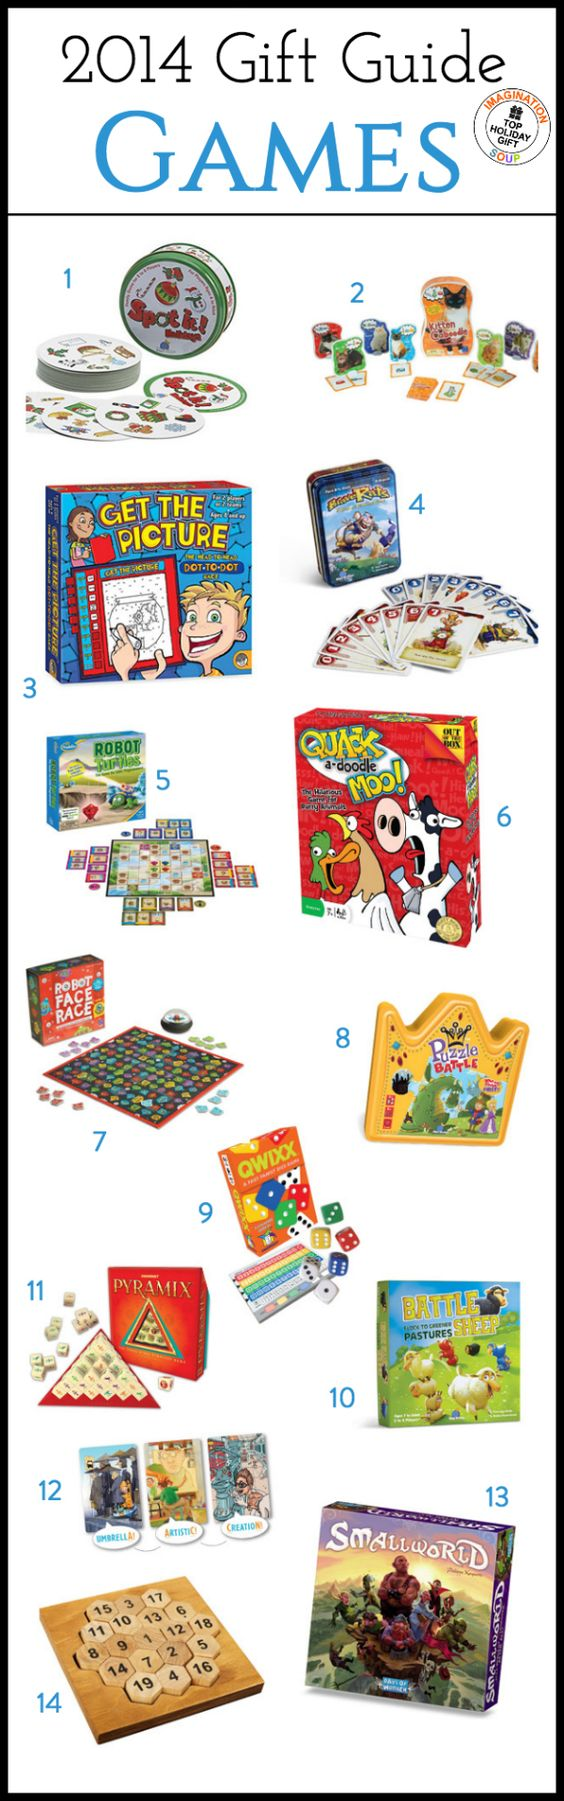 From card games to board games, there are the best learning games for kids from 2014!